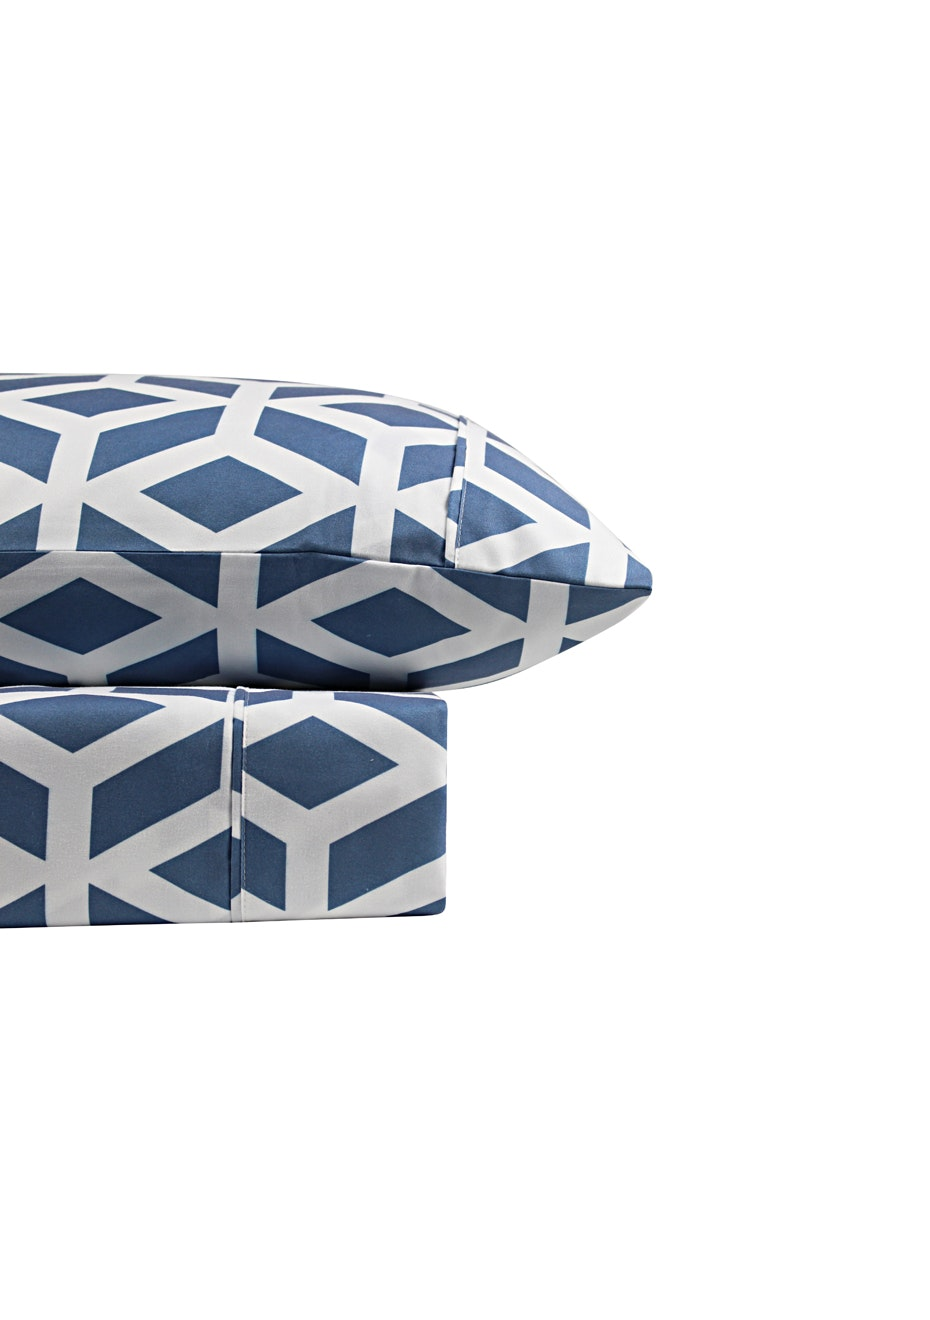 Thermal Flannel Sheet Sets - Manhattan Design - Bay Blue - Double Bed